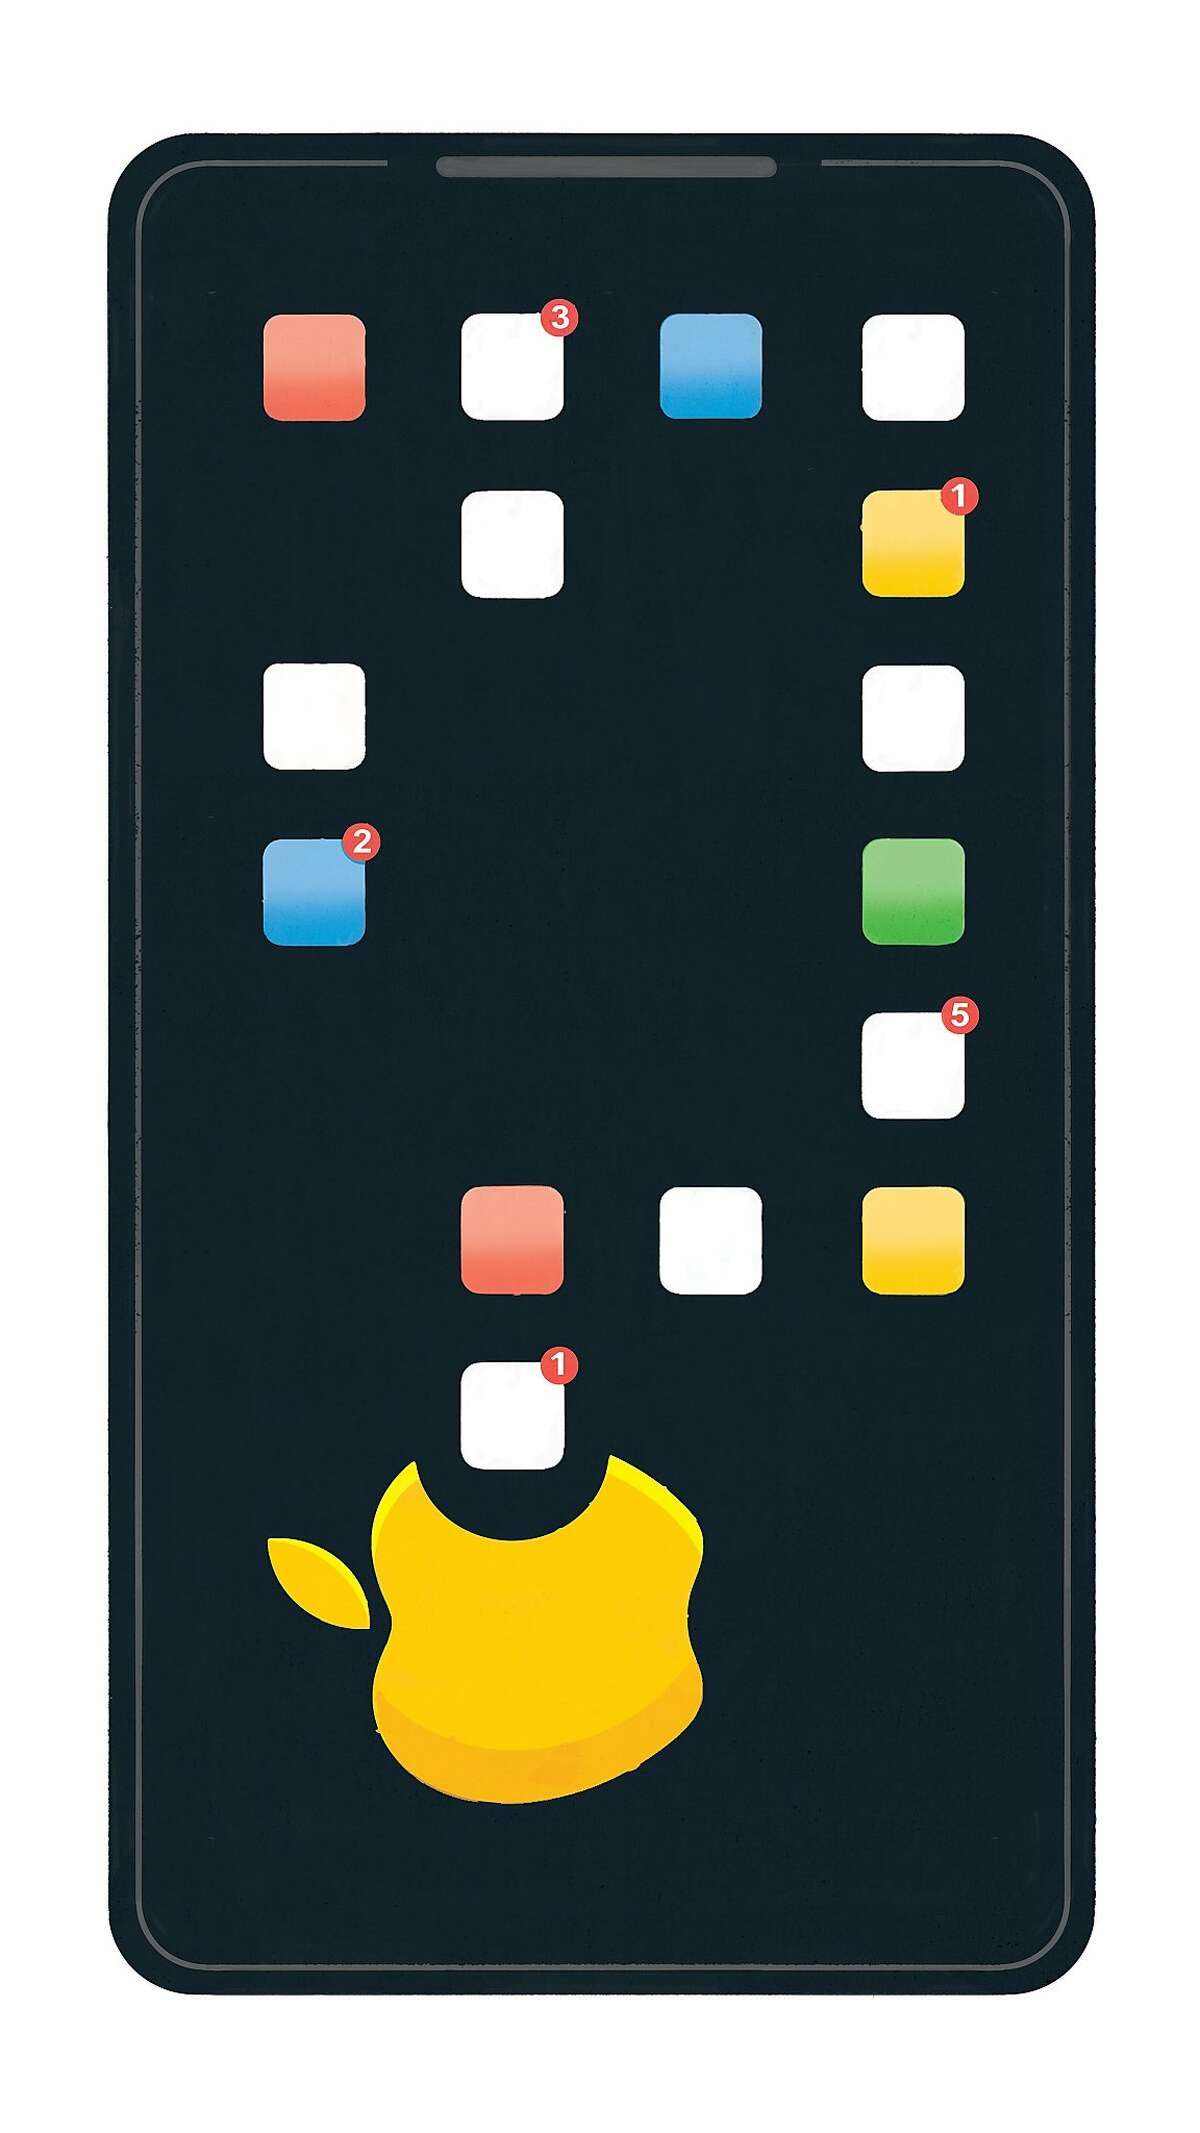 Last year, with much fanfare, Apple unveiled a screen-time tracker of its own. Then it quietly began purging competitors from its store. (Chris Gash/The New York Times) -- NO SALES; FOR EDITORIAL USE ONLY WITH NYT STORY APPLE APPS BY JACK NICAS FOR APRIL 27, 2019. ALL OTHER USE PROHIBITED. --